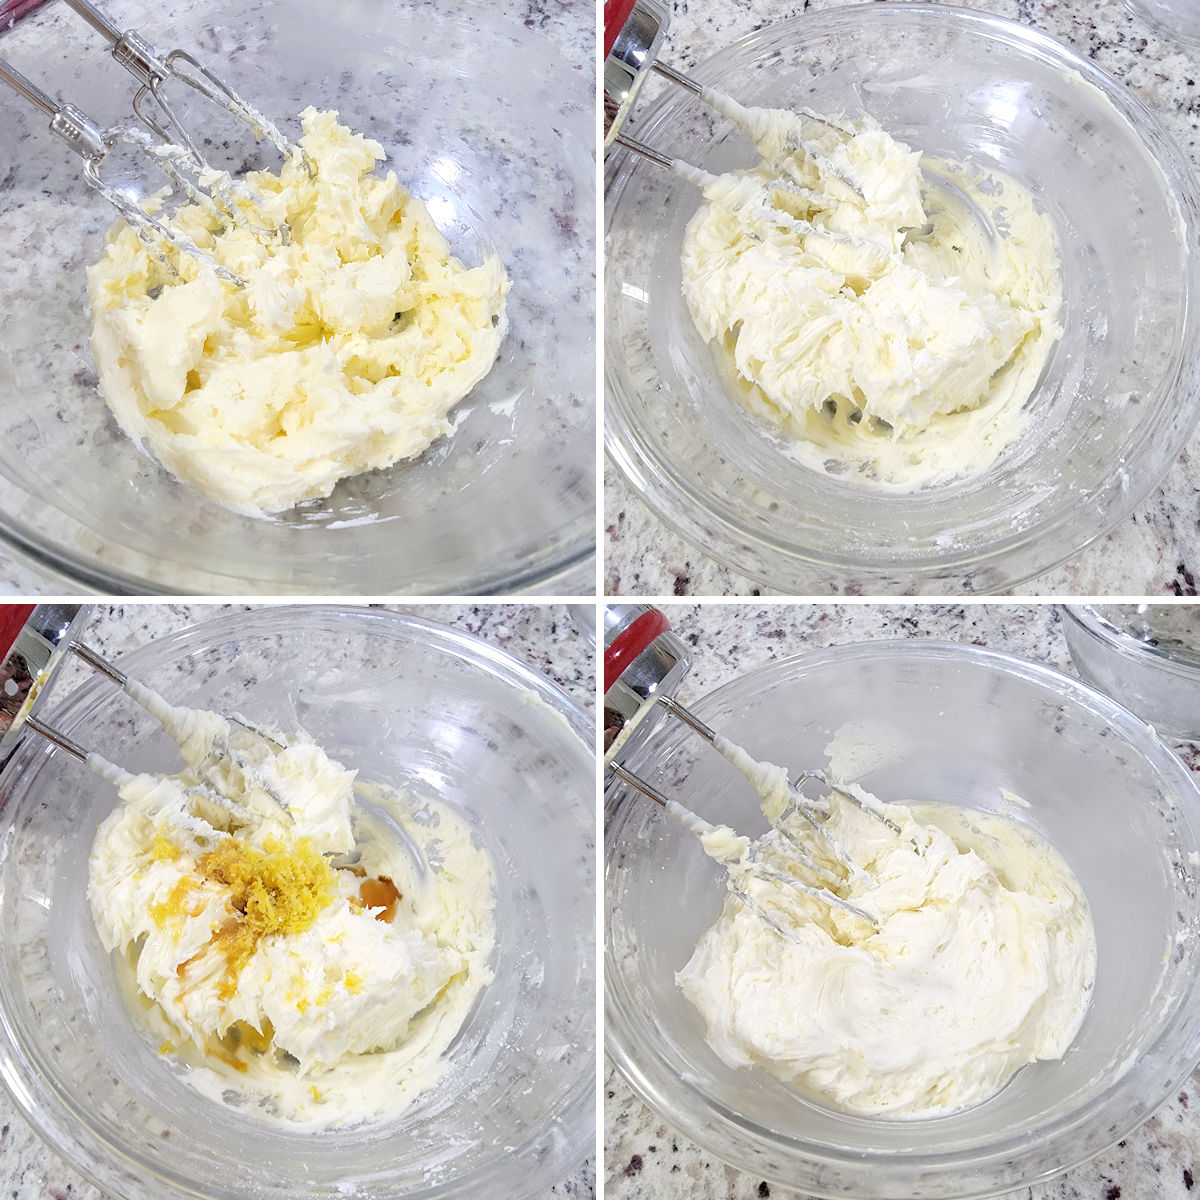 Mixing lemon frosting in a bowl.